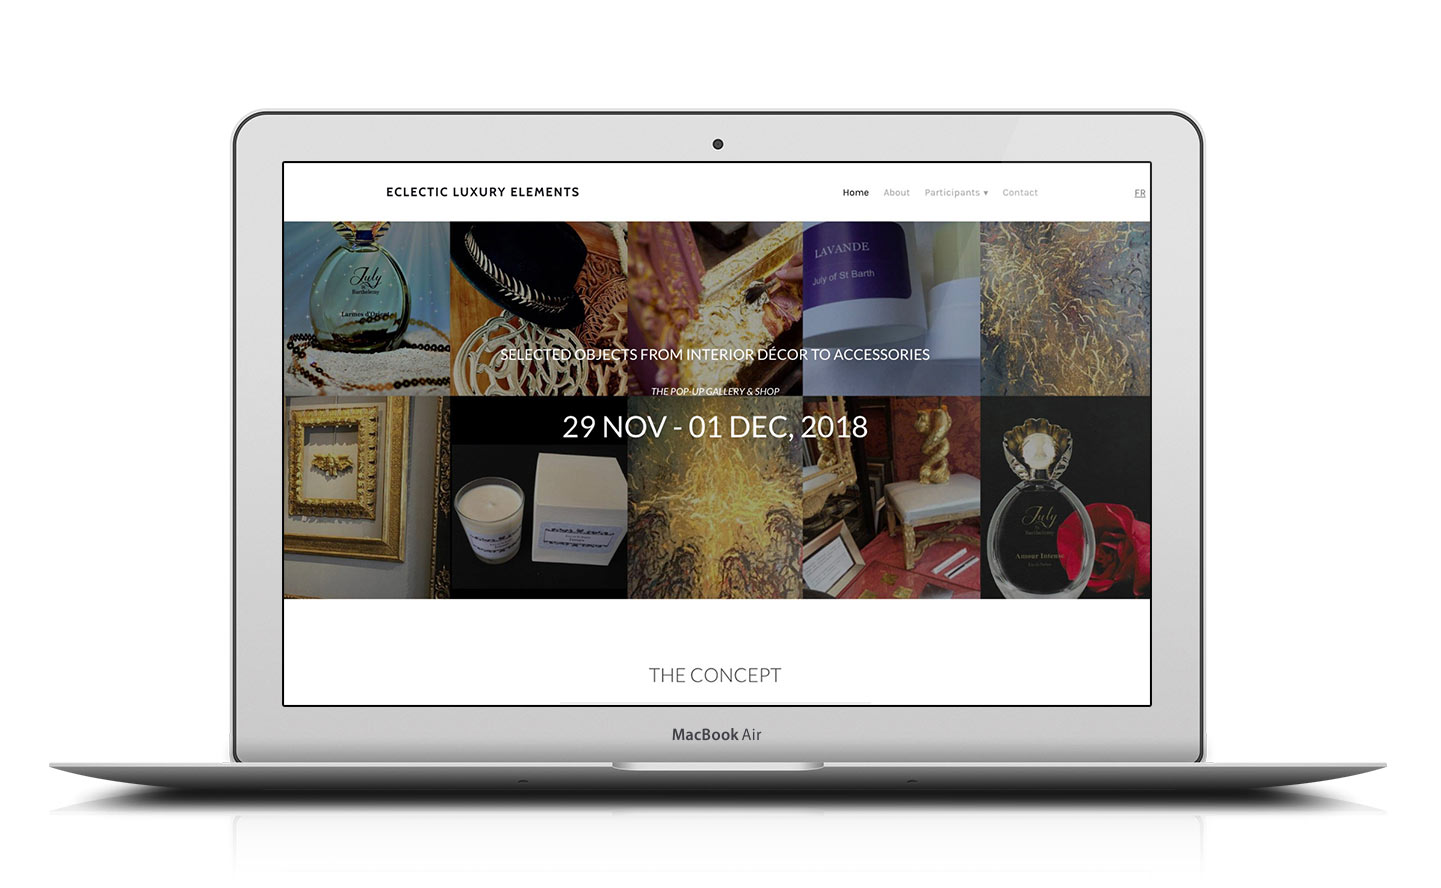 Home page design eclectic luxury elements